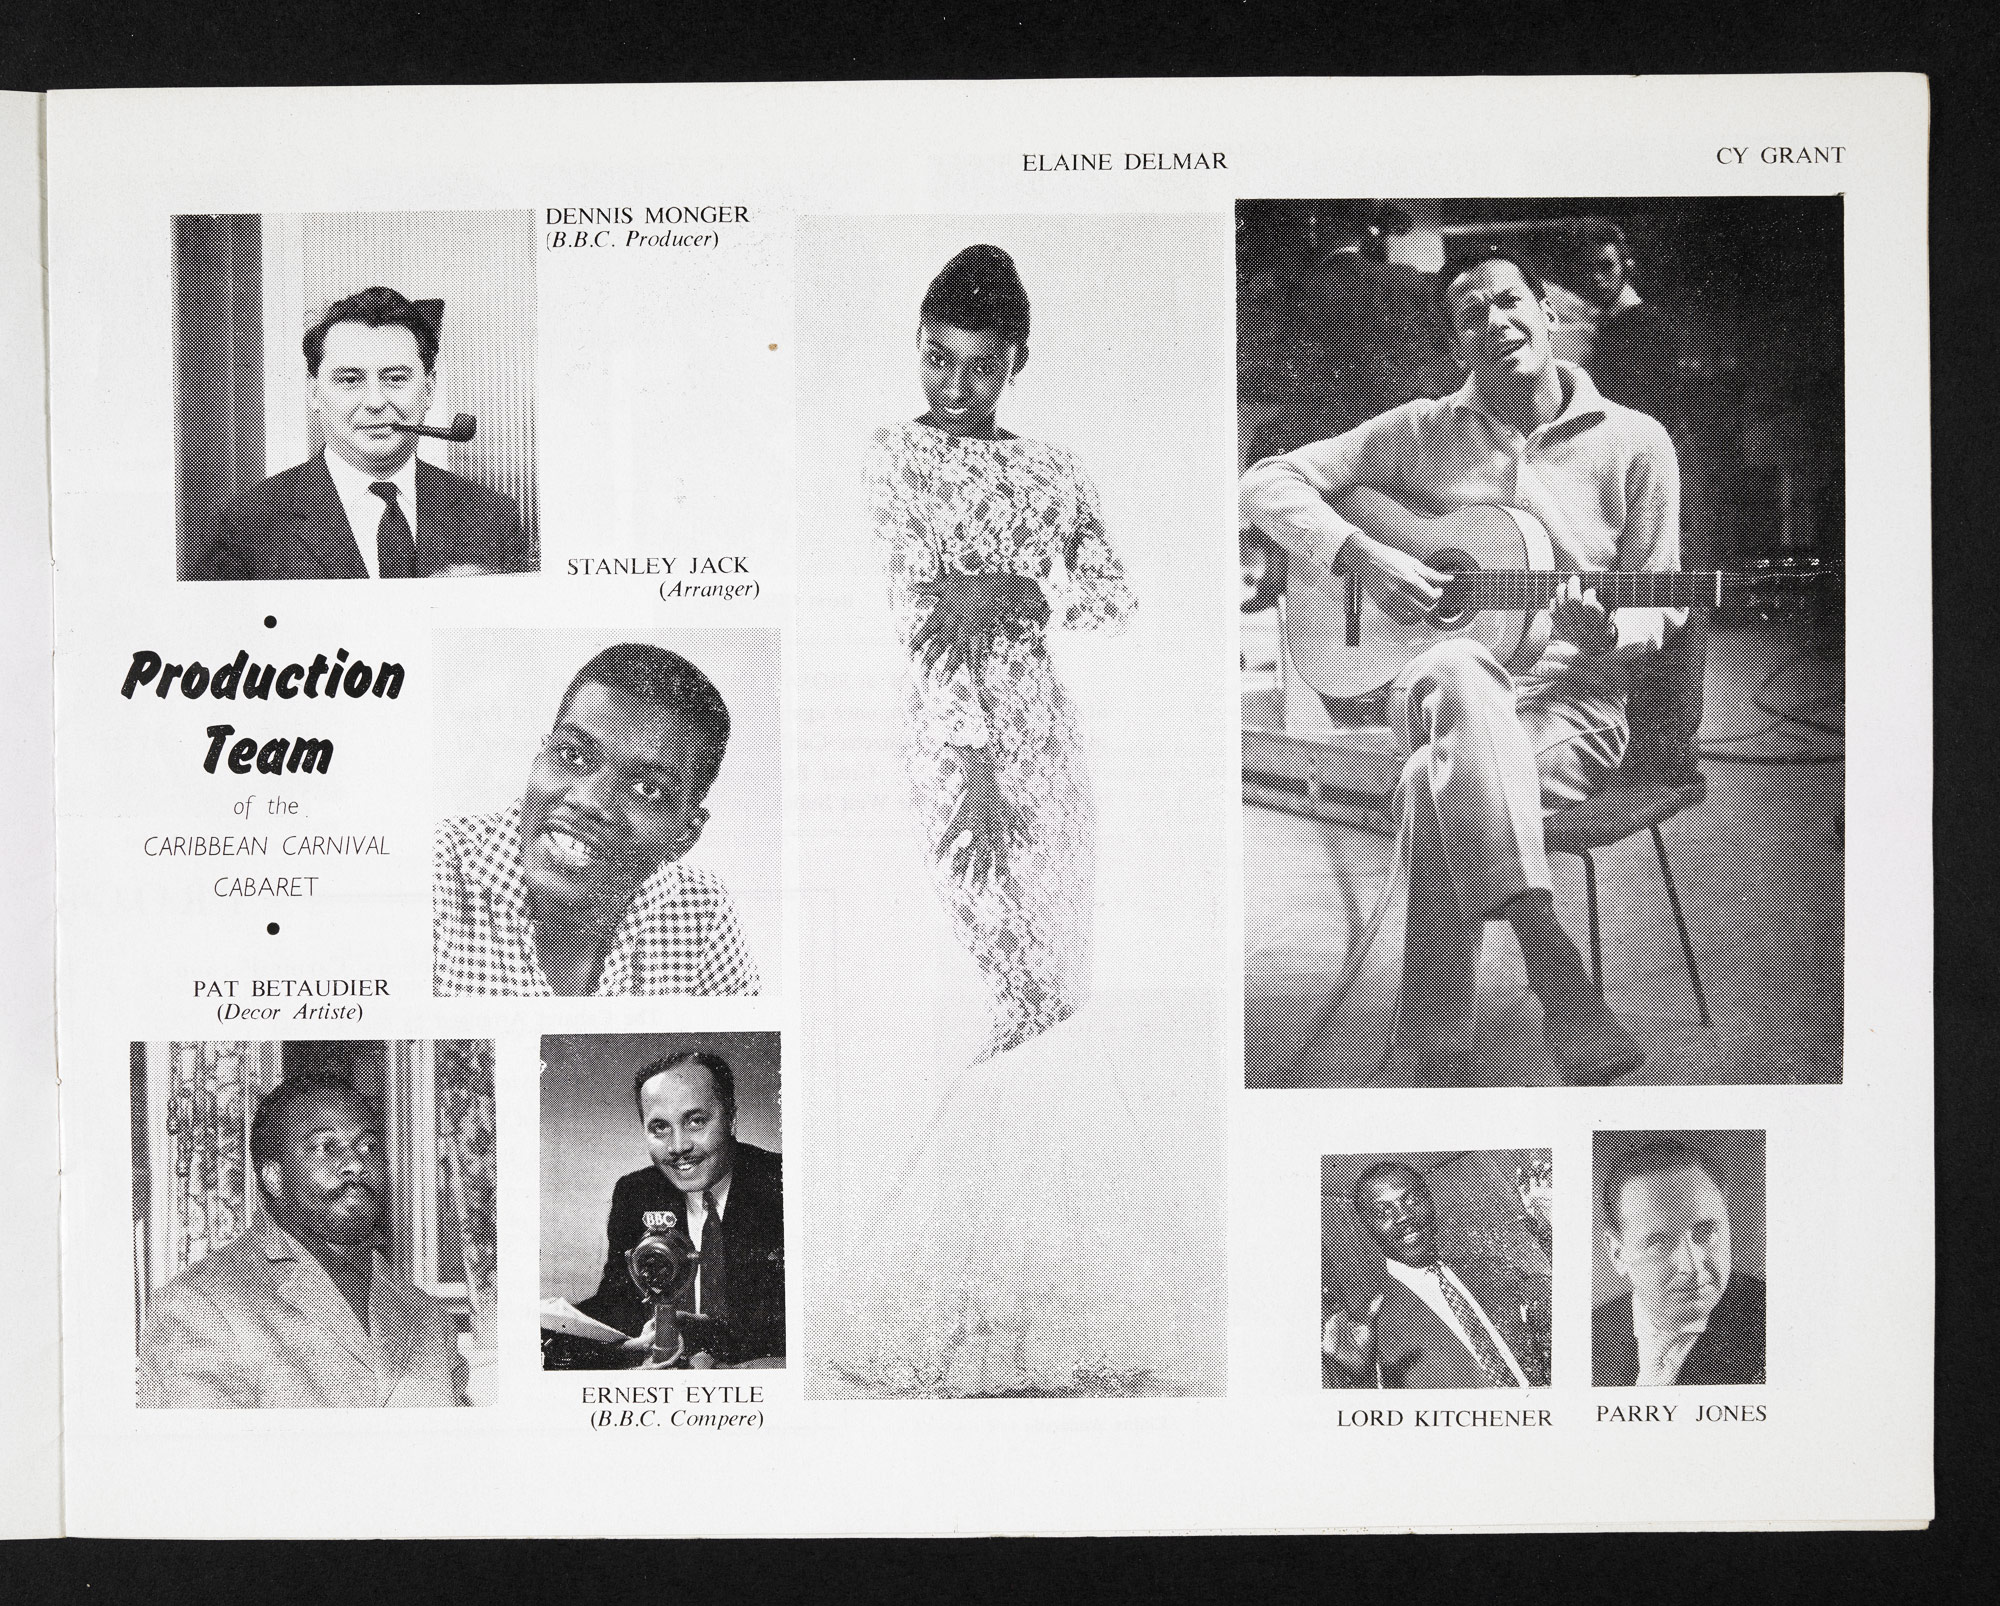 Page from the Caribbean Carnival programme for 1960, containing photographs of Lord Kitchener, Elaine Delmar and Cy Grant